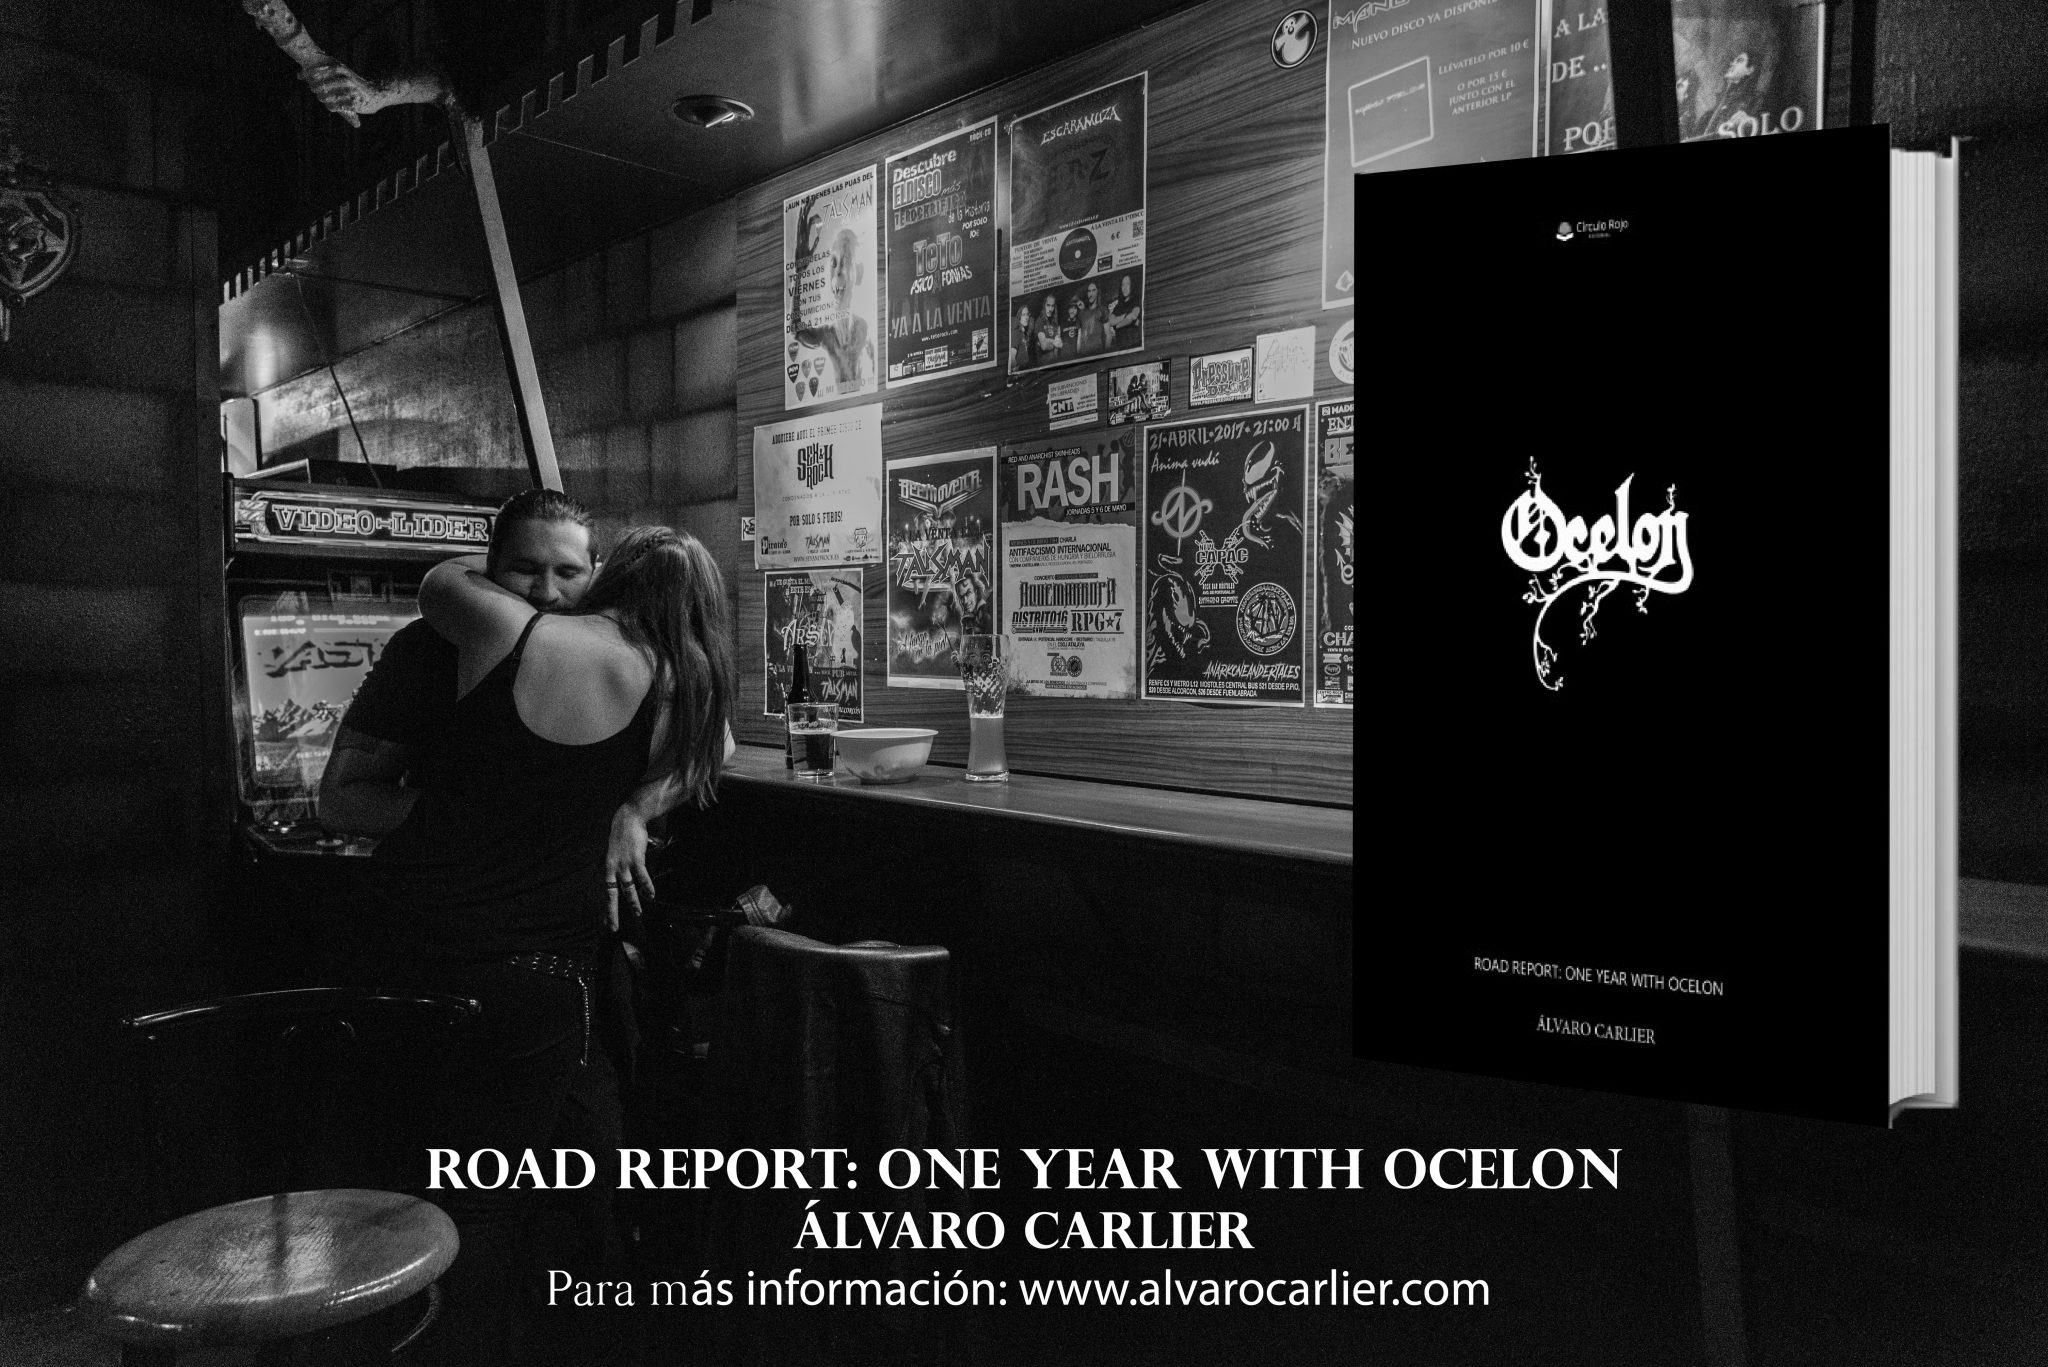 Road Report: One Year With Ocelon